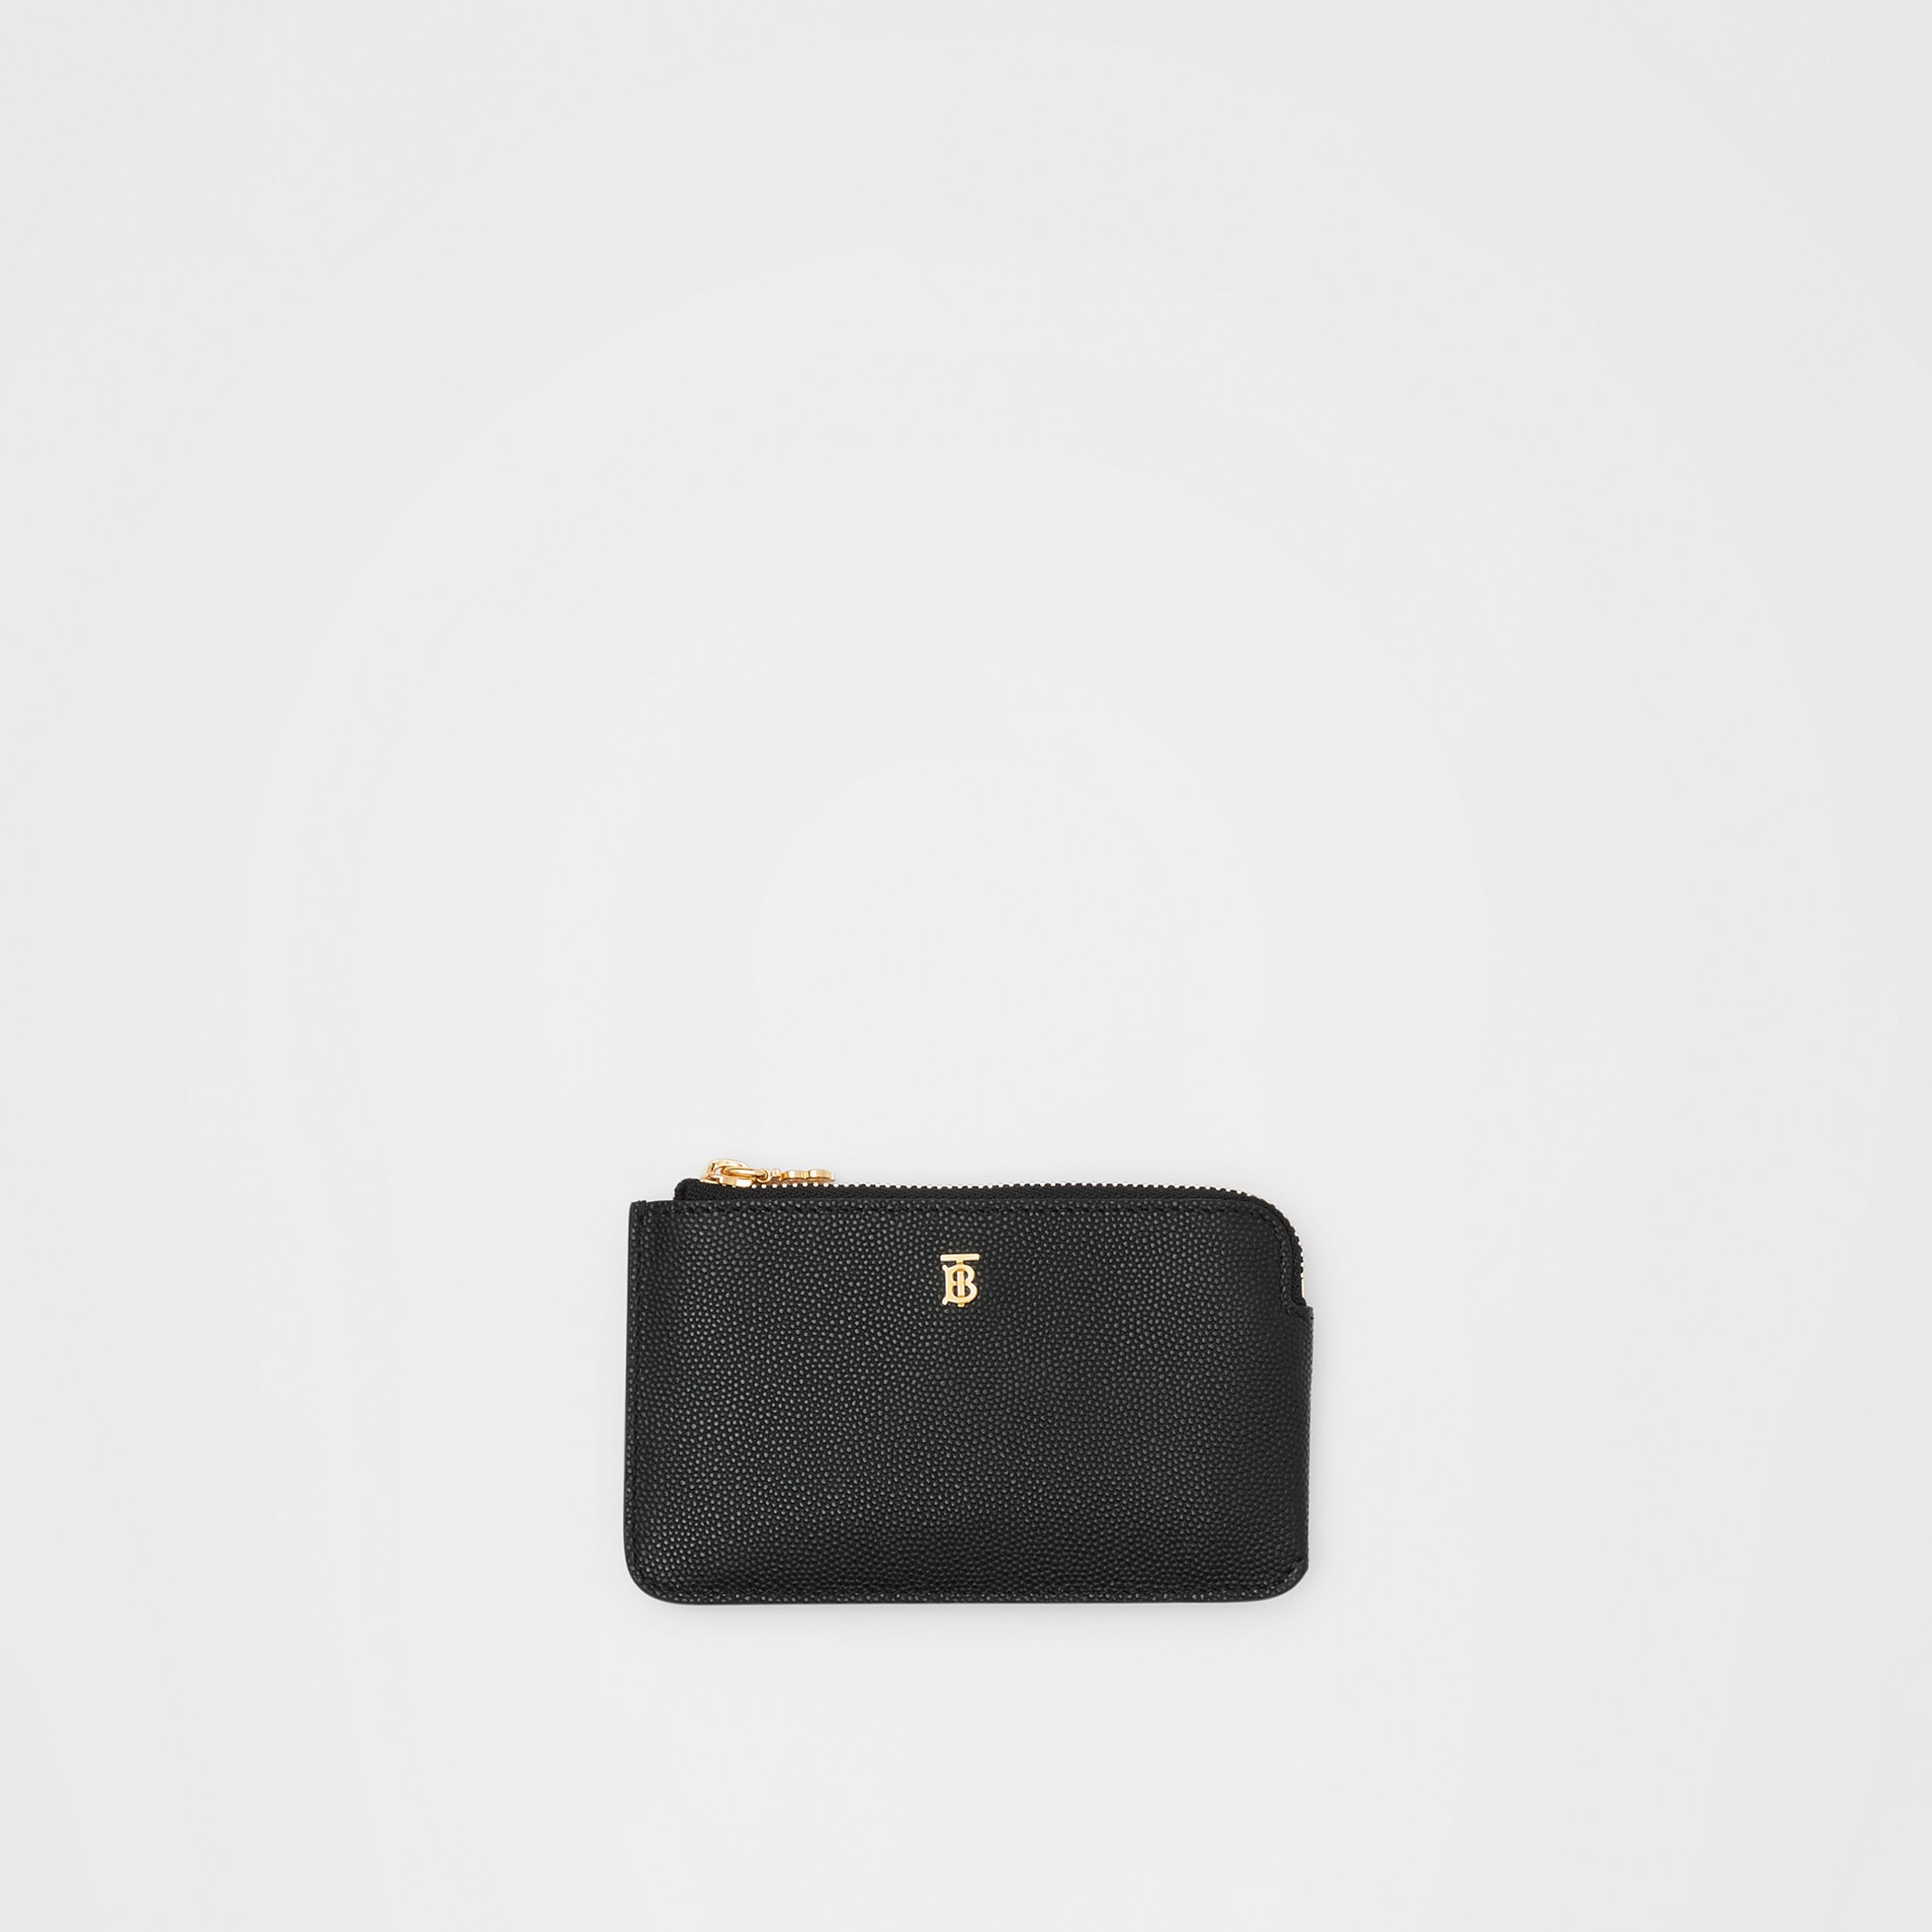 Monogram Motif Grainy Leather Zip Coin Case in Black - Women | Burberry - 1